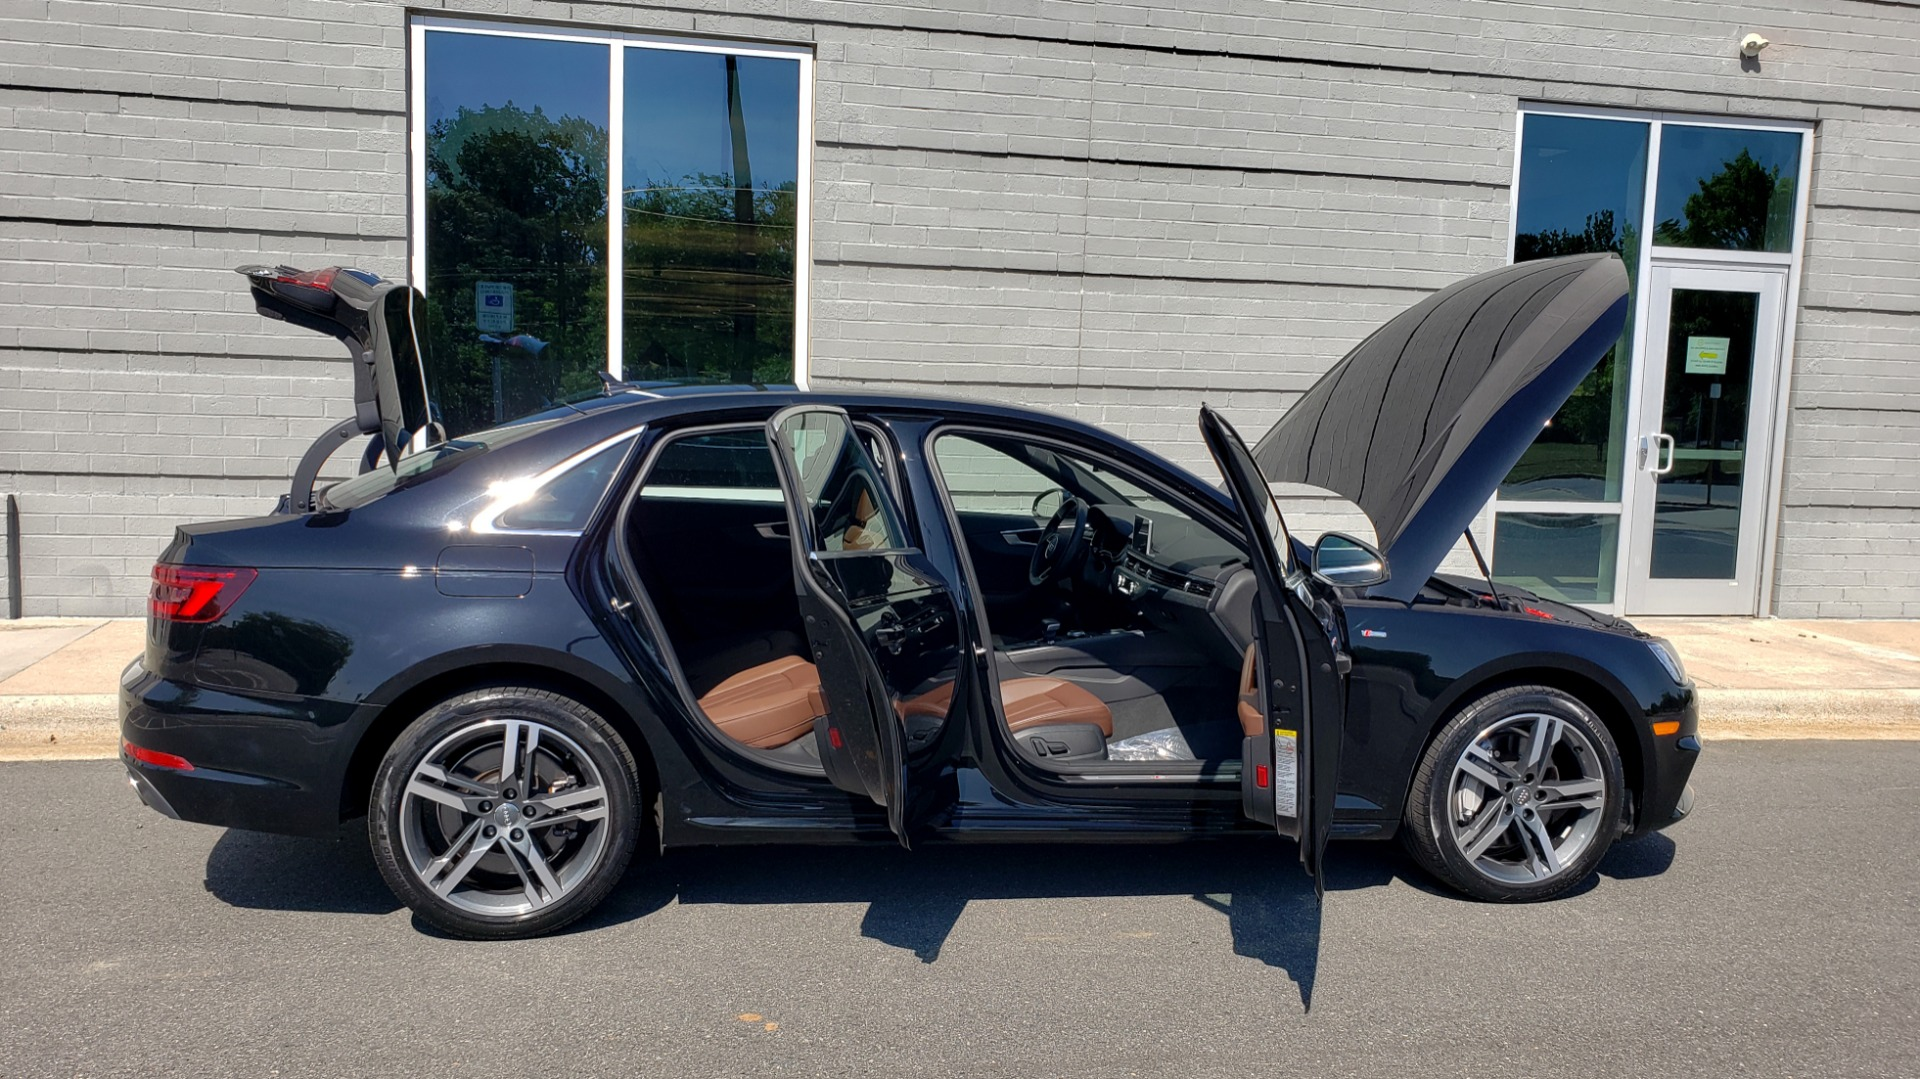 Used 2018 Audi A4 PREMIUM PLUS 2.0T / NAV / SUNROOF / B&O SND / CLD WTHR / REARVIEW for sale $30,695 at Formula Imports in Charlotte NC 28227 11